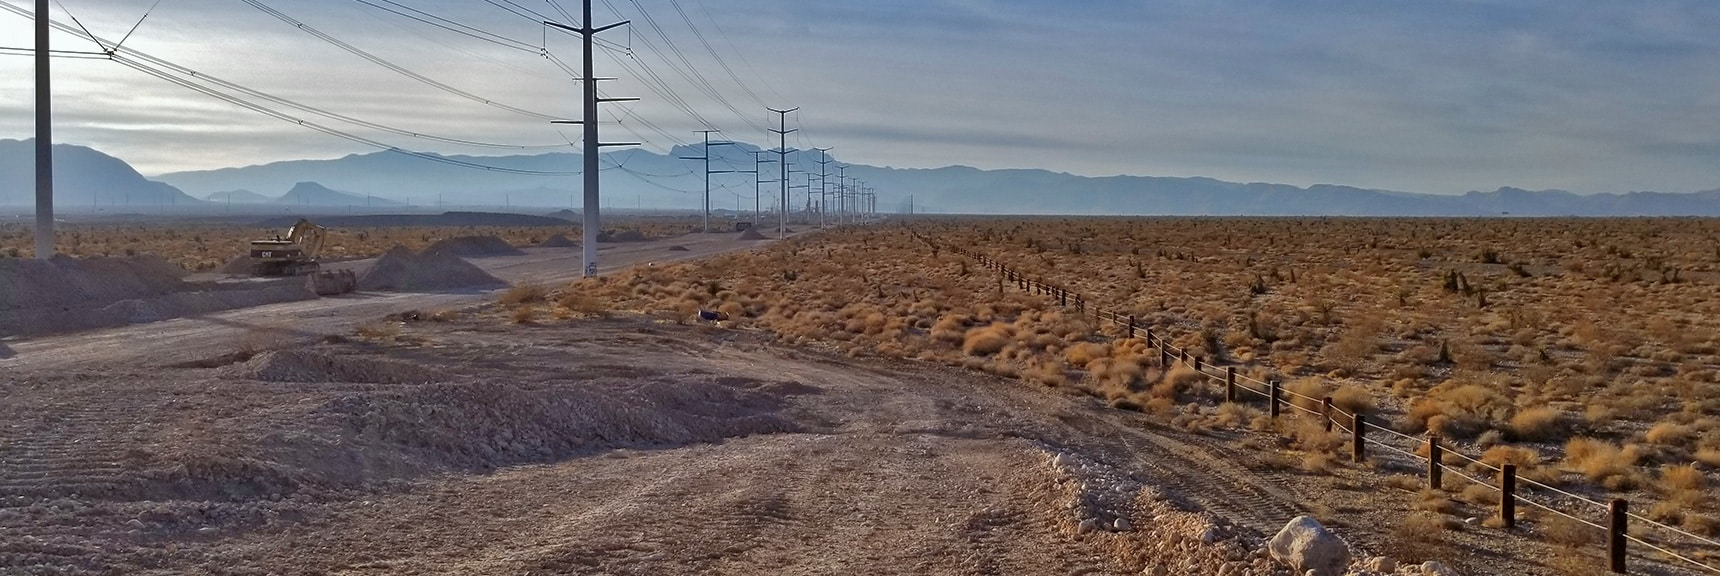 View West Down Moccasin Toward Hwy 95 and Me Charleston Wilderness. | Snapshot of Las Vegas Northern Growth Edge on January 3, 2021